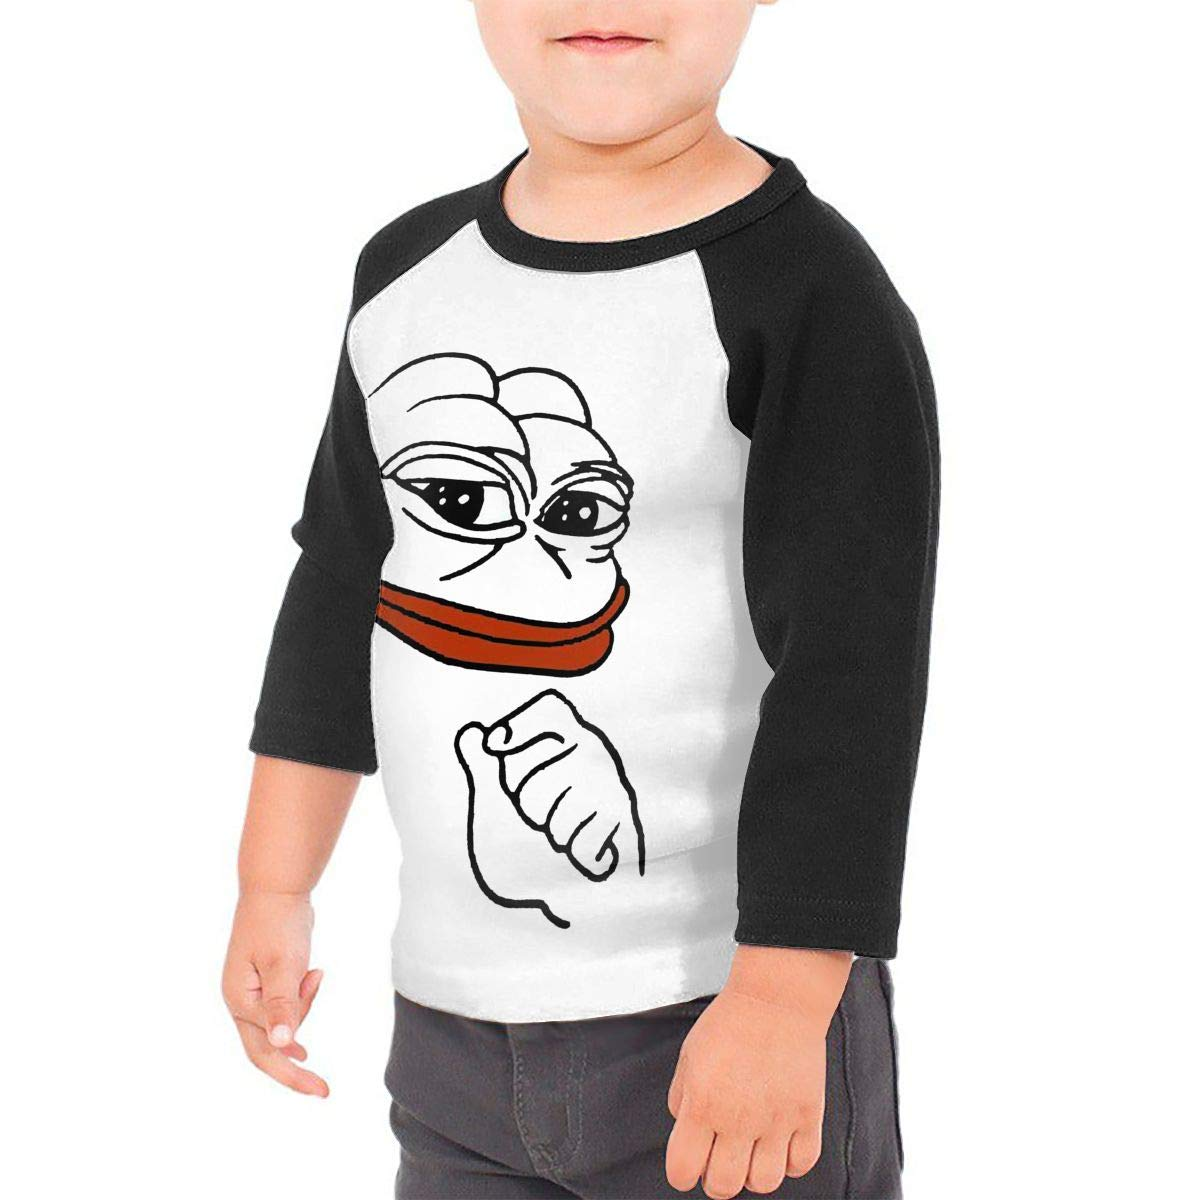 Pepe Meme Frog Unisex 100/% Cotton Childrens 3//4 Sleeves T-Shirt Top Tees 2T~5//6T